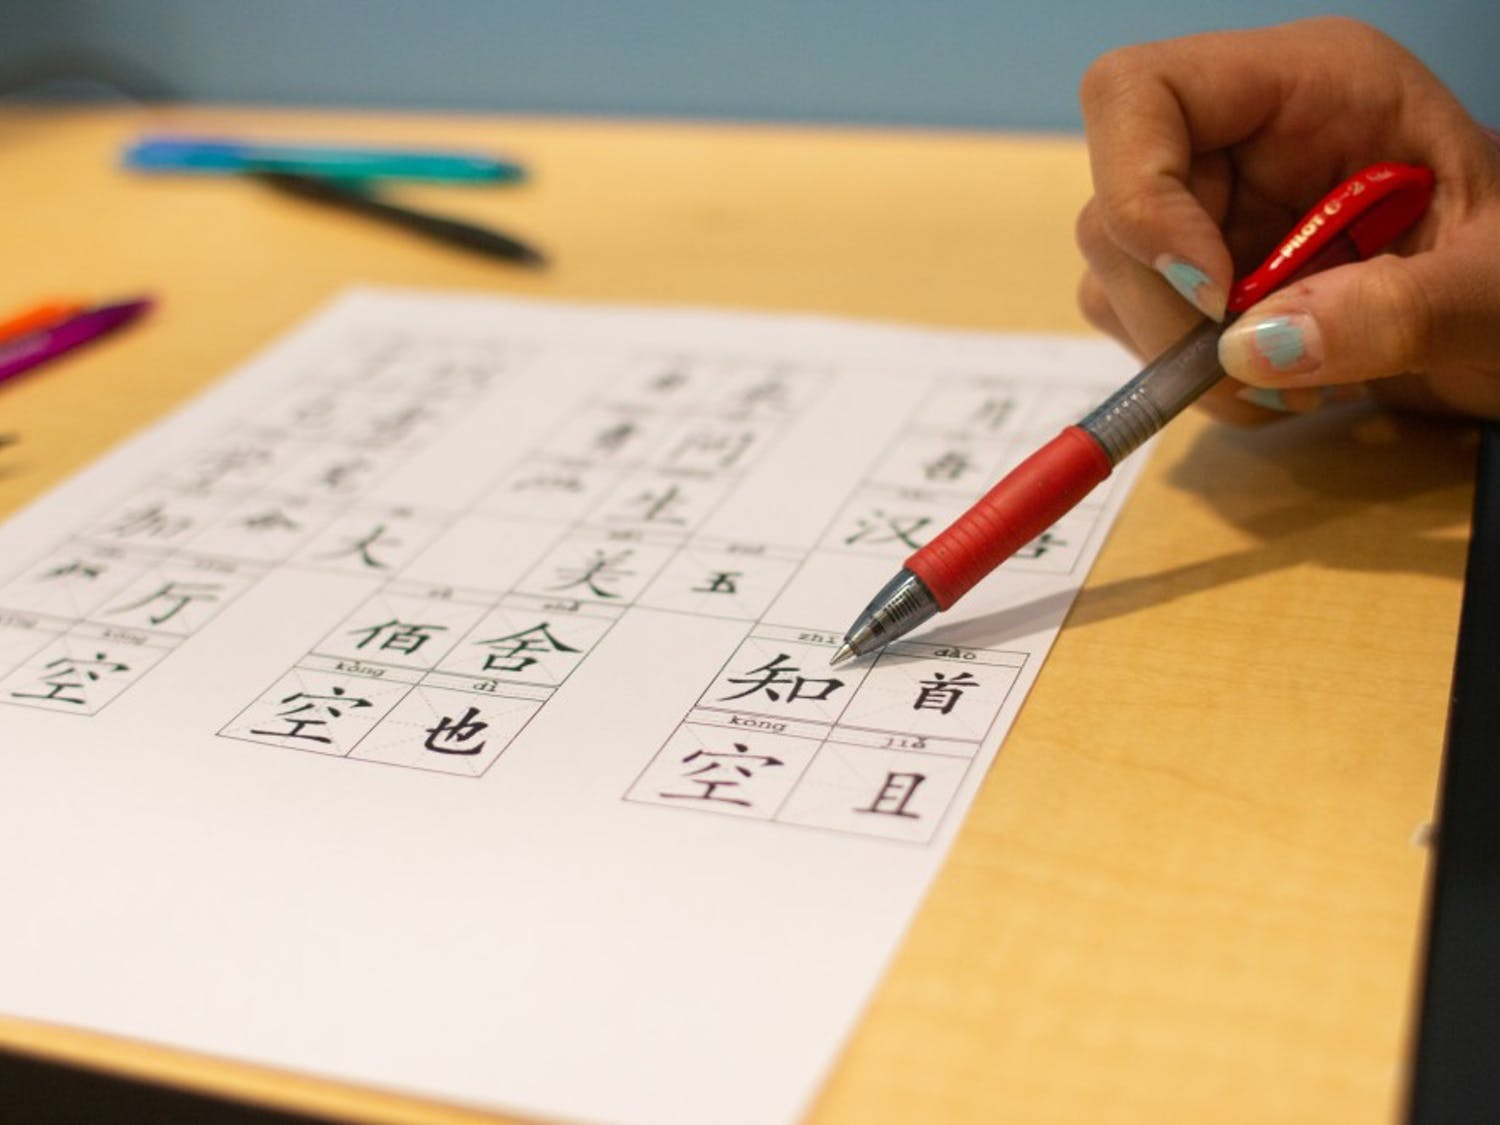 DTH Photo Illustration. A student points at Mandarin script on a practice worksheet in Chapel Hill, N.C., on Monday, March 18, 2019. Glenwood Elementary resolved to expand their Mandarin immersion program and phase out other tracks, prompting redistricting for current kindergarteners whose parents did not want them to participate.